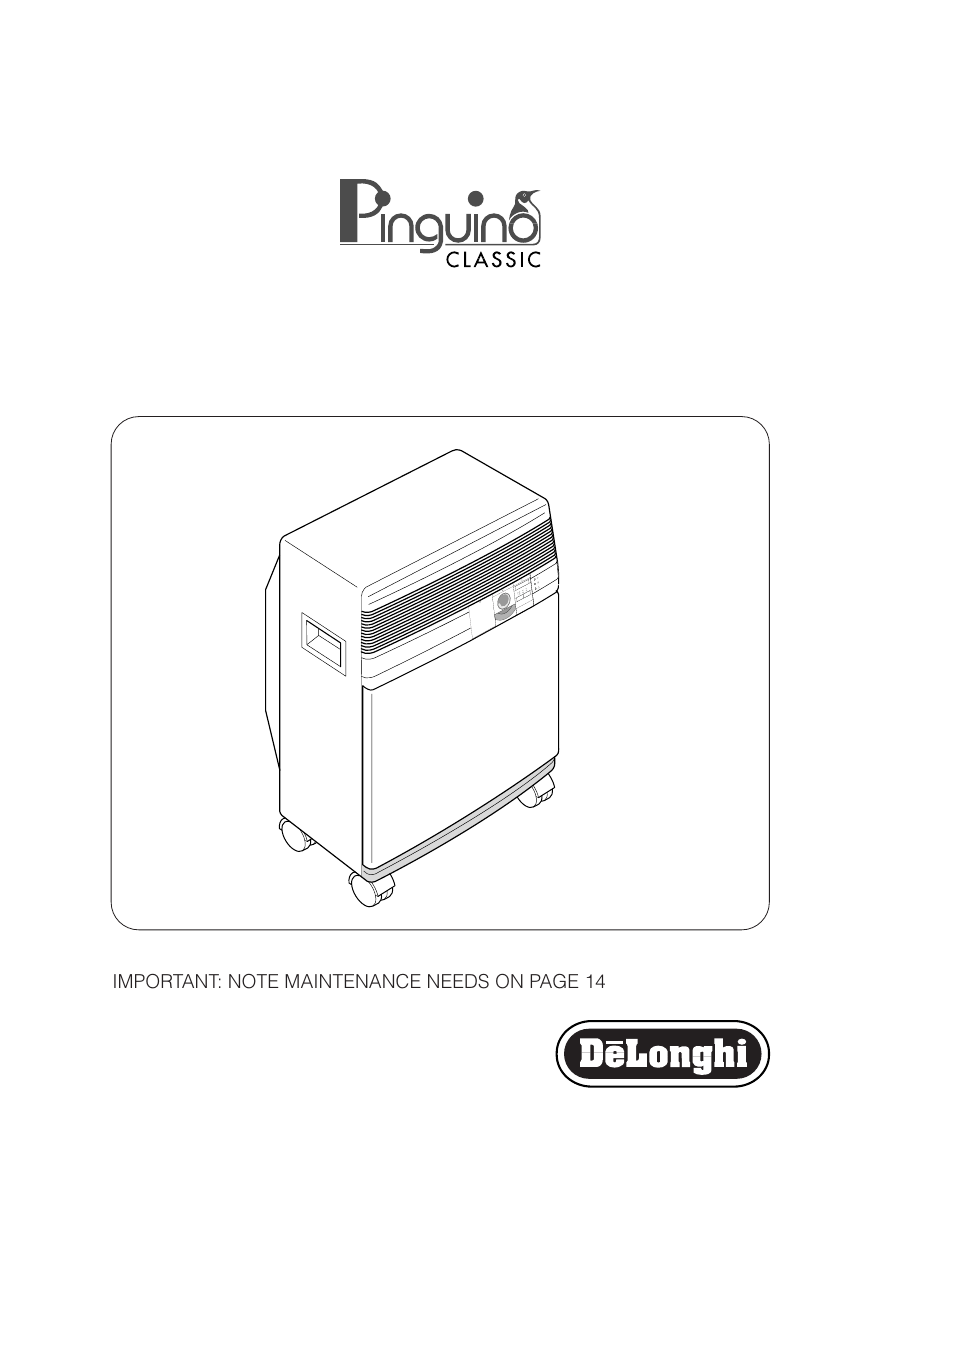 Delonghi Pinguino Pac 250 U User Manual 15 Pages